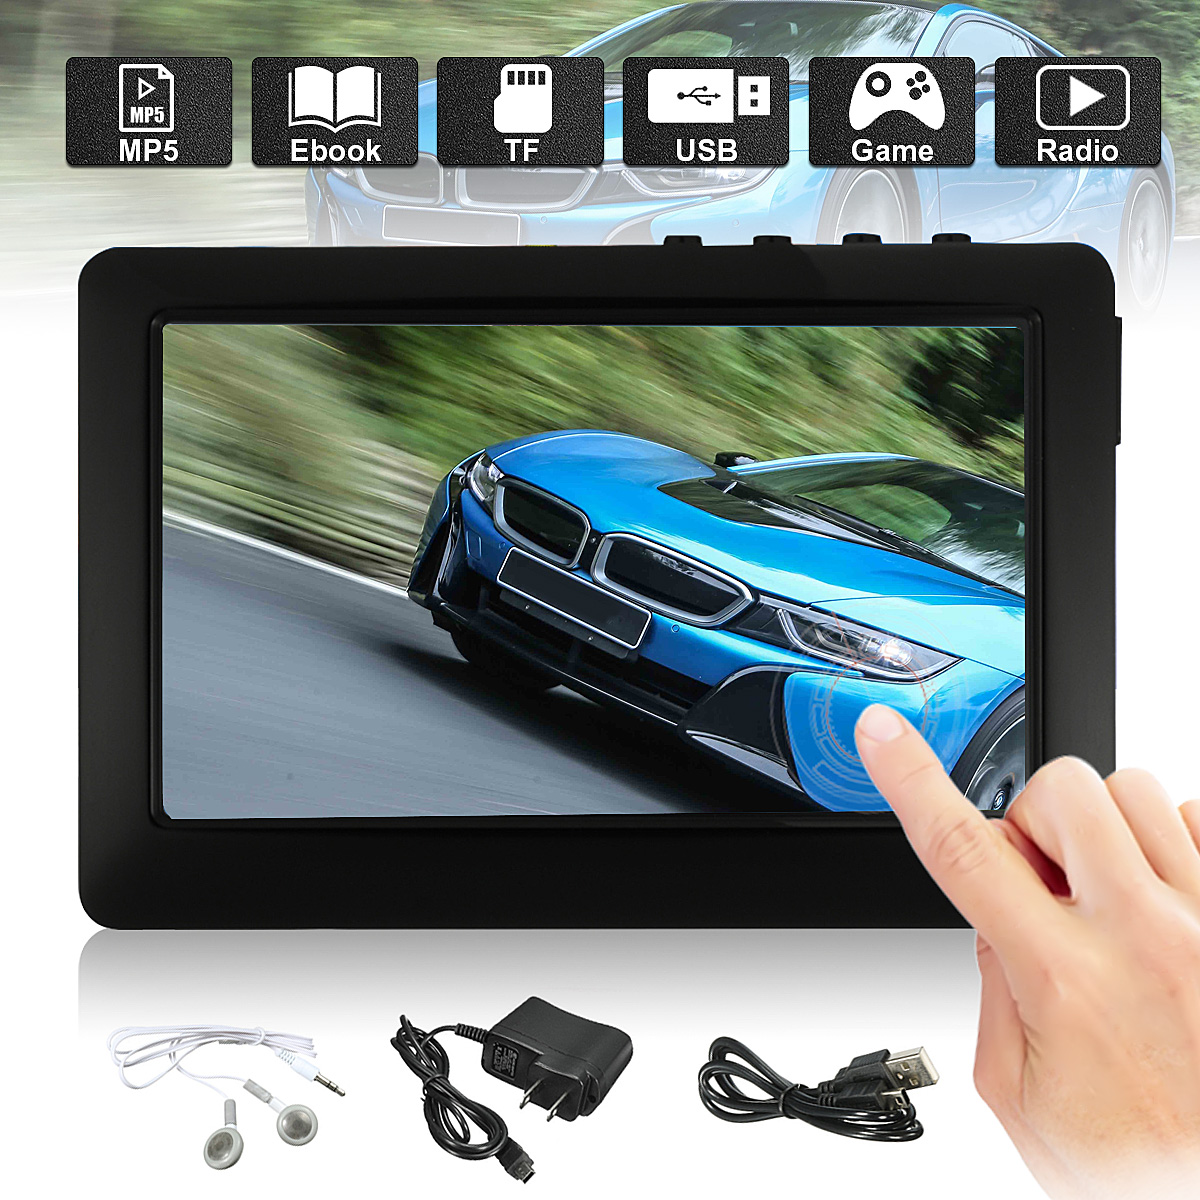 4.3'' Touch Screen TF Card Support Max 32GB MP3 MP4 MP5 Player with TV OUT, FM Radio, Video Recorder , Play Game